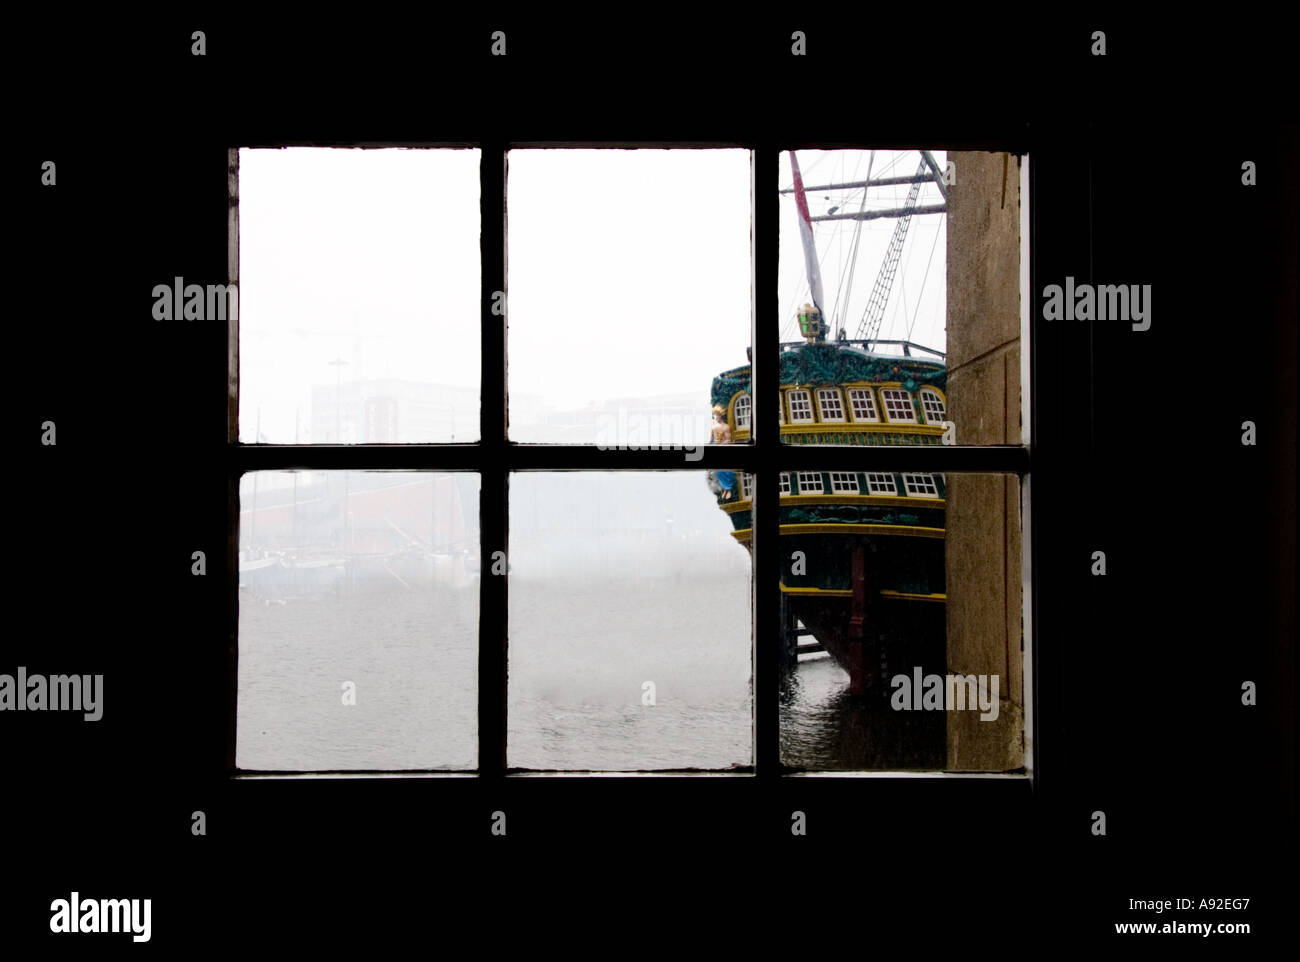 Historic sailing ship viewed from a multi paned window - Stock Image